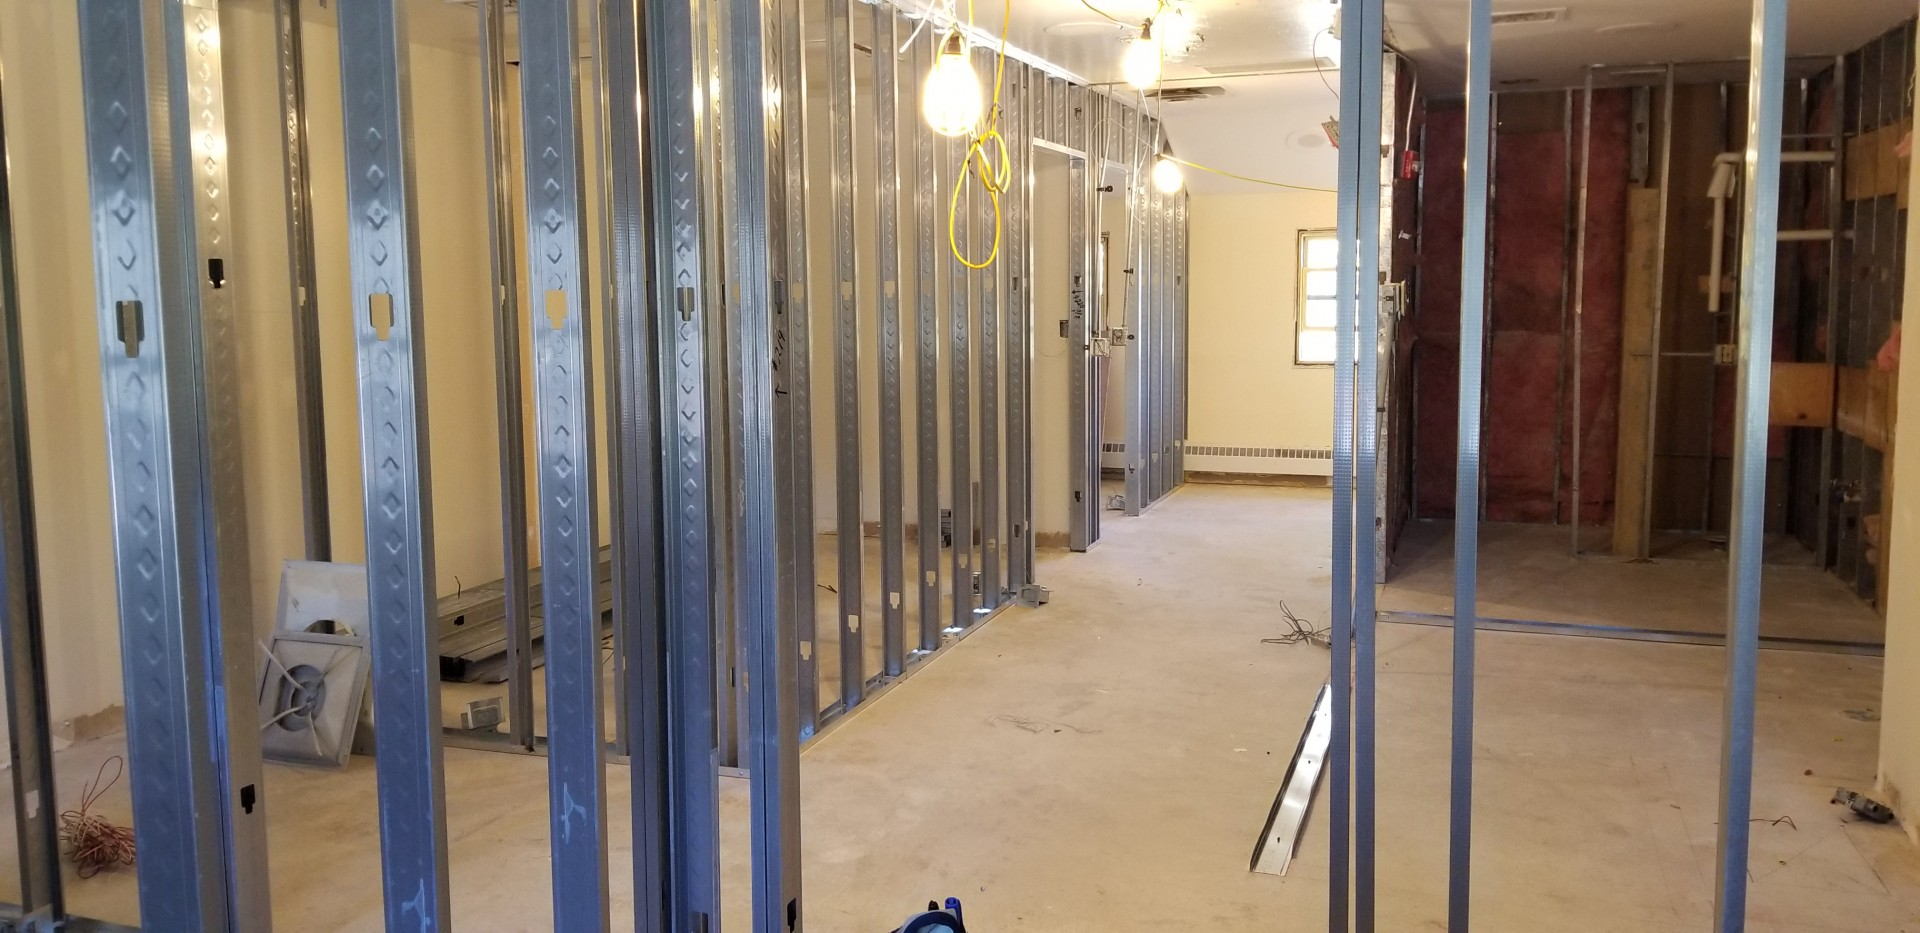 The renovation project at Station 1 is making the dormitory space safer for firefighters and is expected to be complete by the end of December 2020.